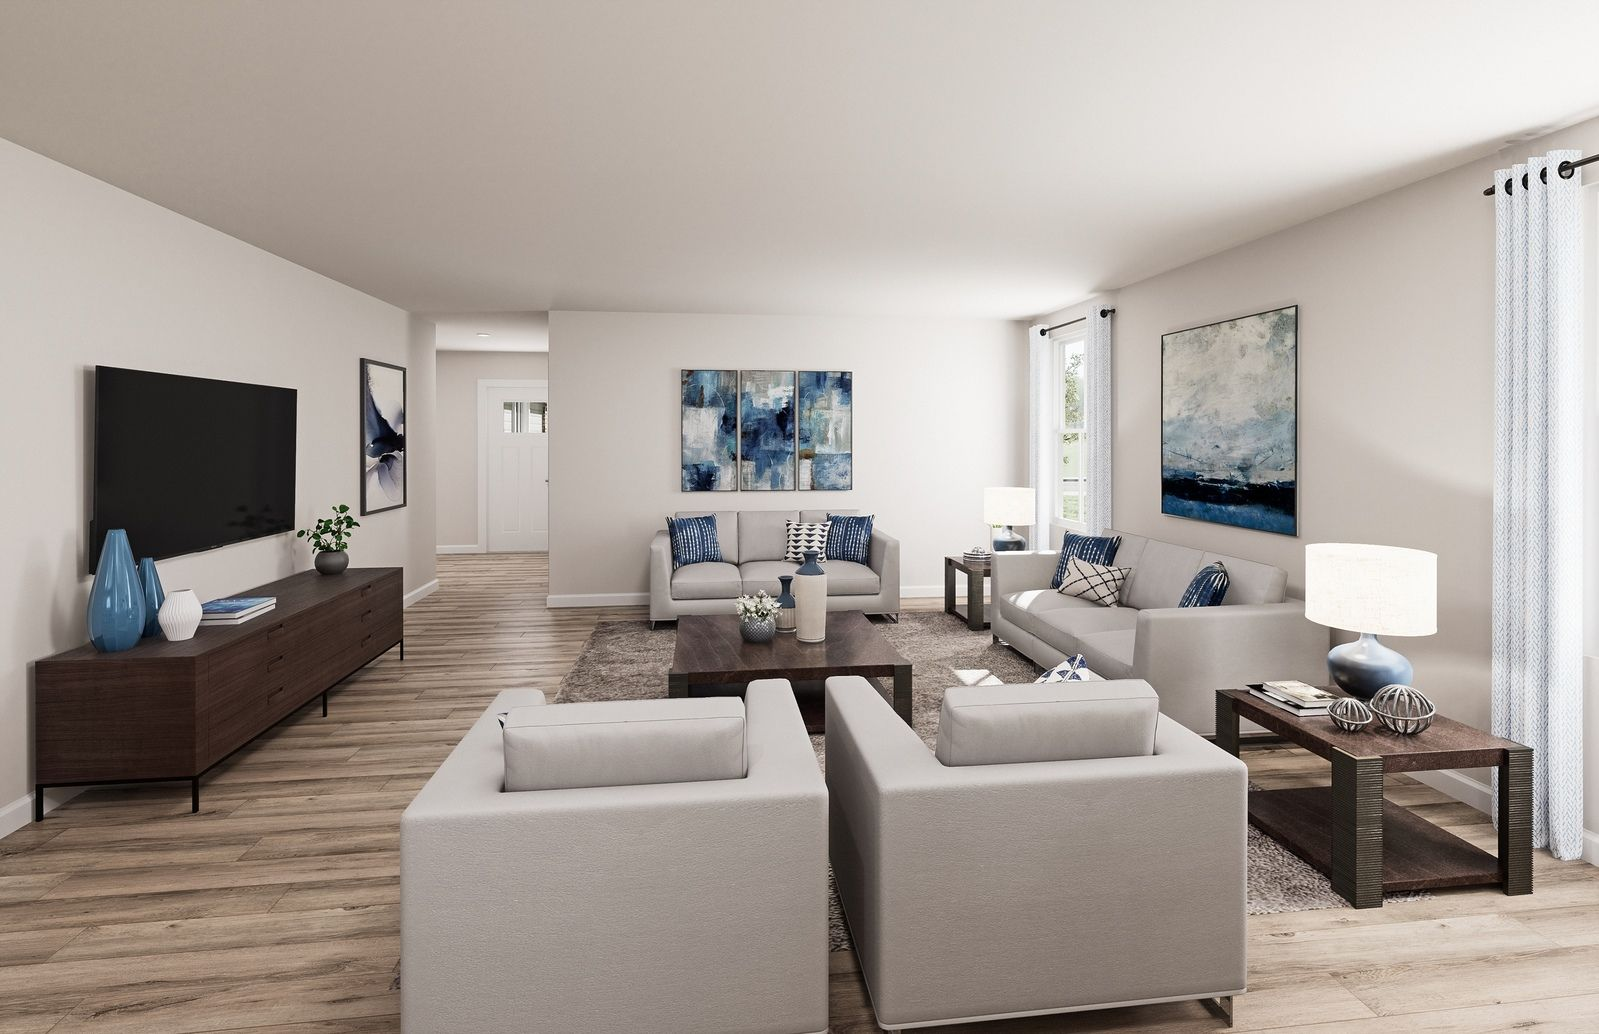 Living Area featured in the Eden Cay By Ryan Homes in Dover, DE